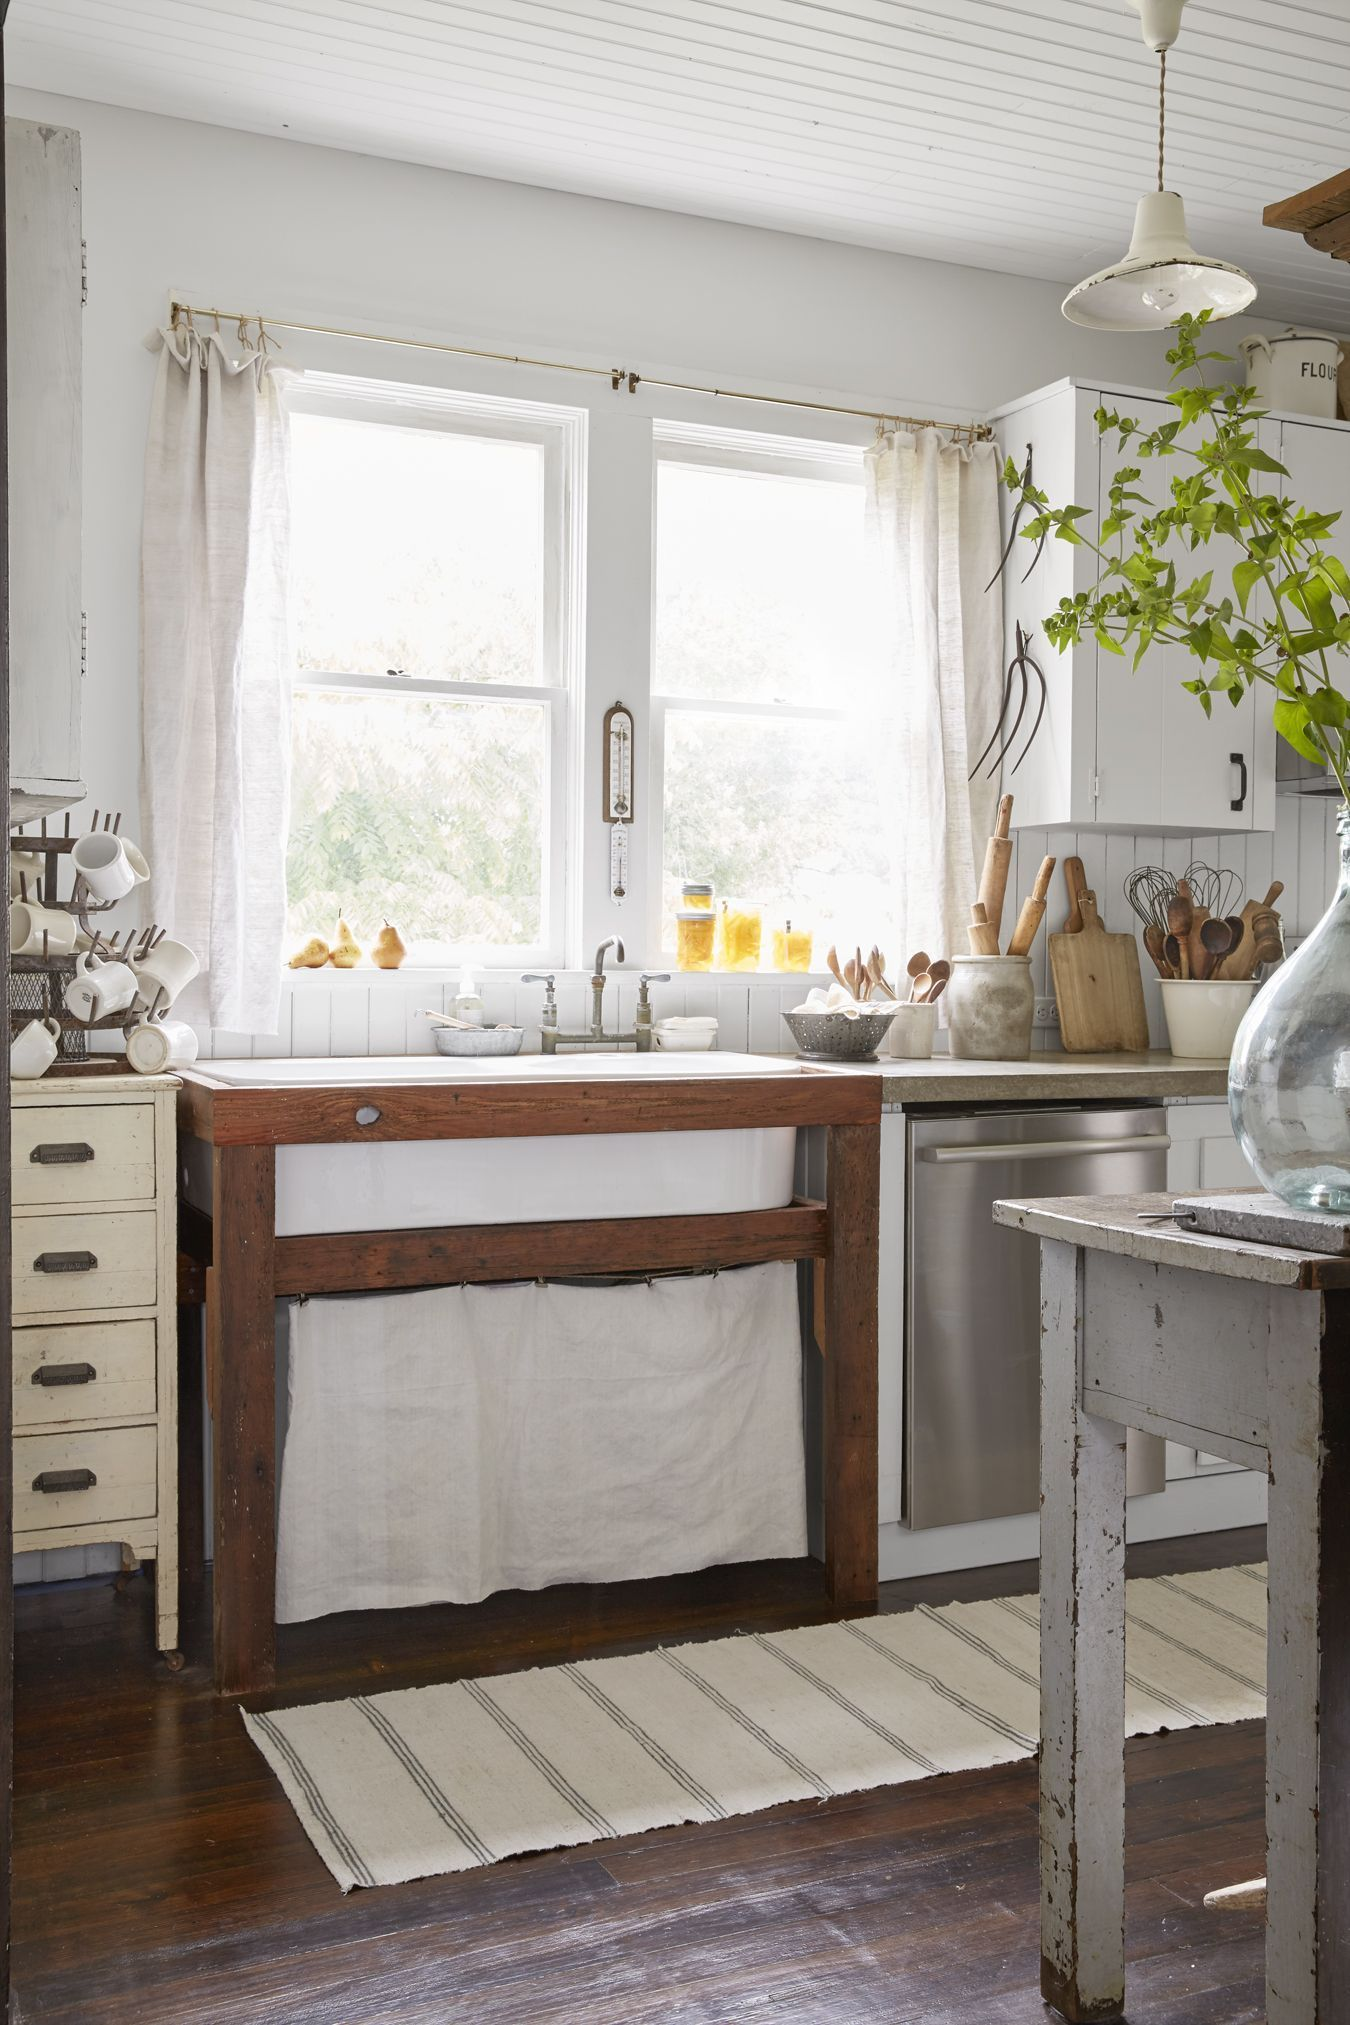 Farmhouse style kitchen cabinets - This Antiques Dealer's 106YearOld Farmhouse Is Just as Beautiful as You'd Expect – Farmhouse style kitchen cabinets